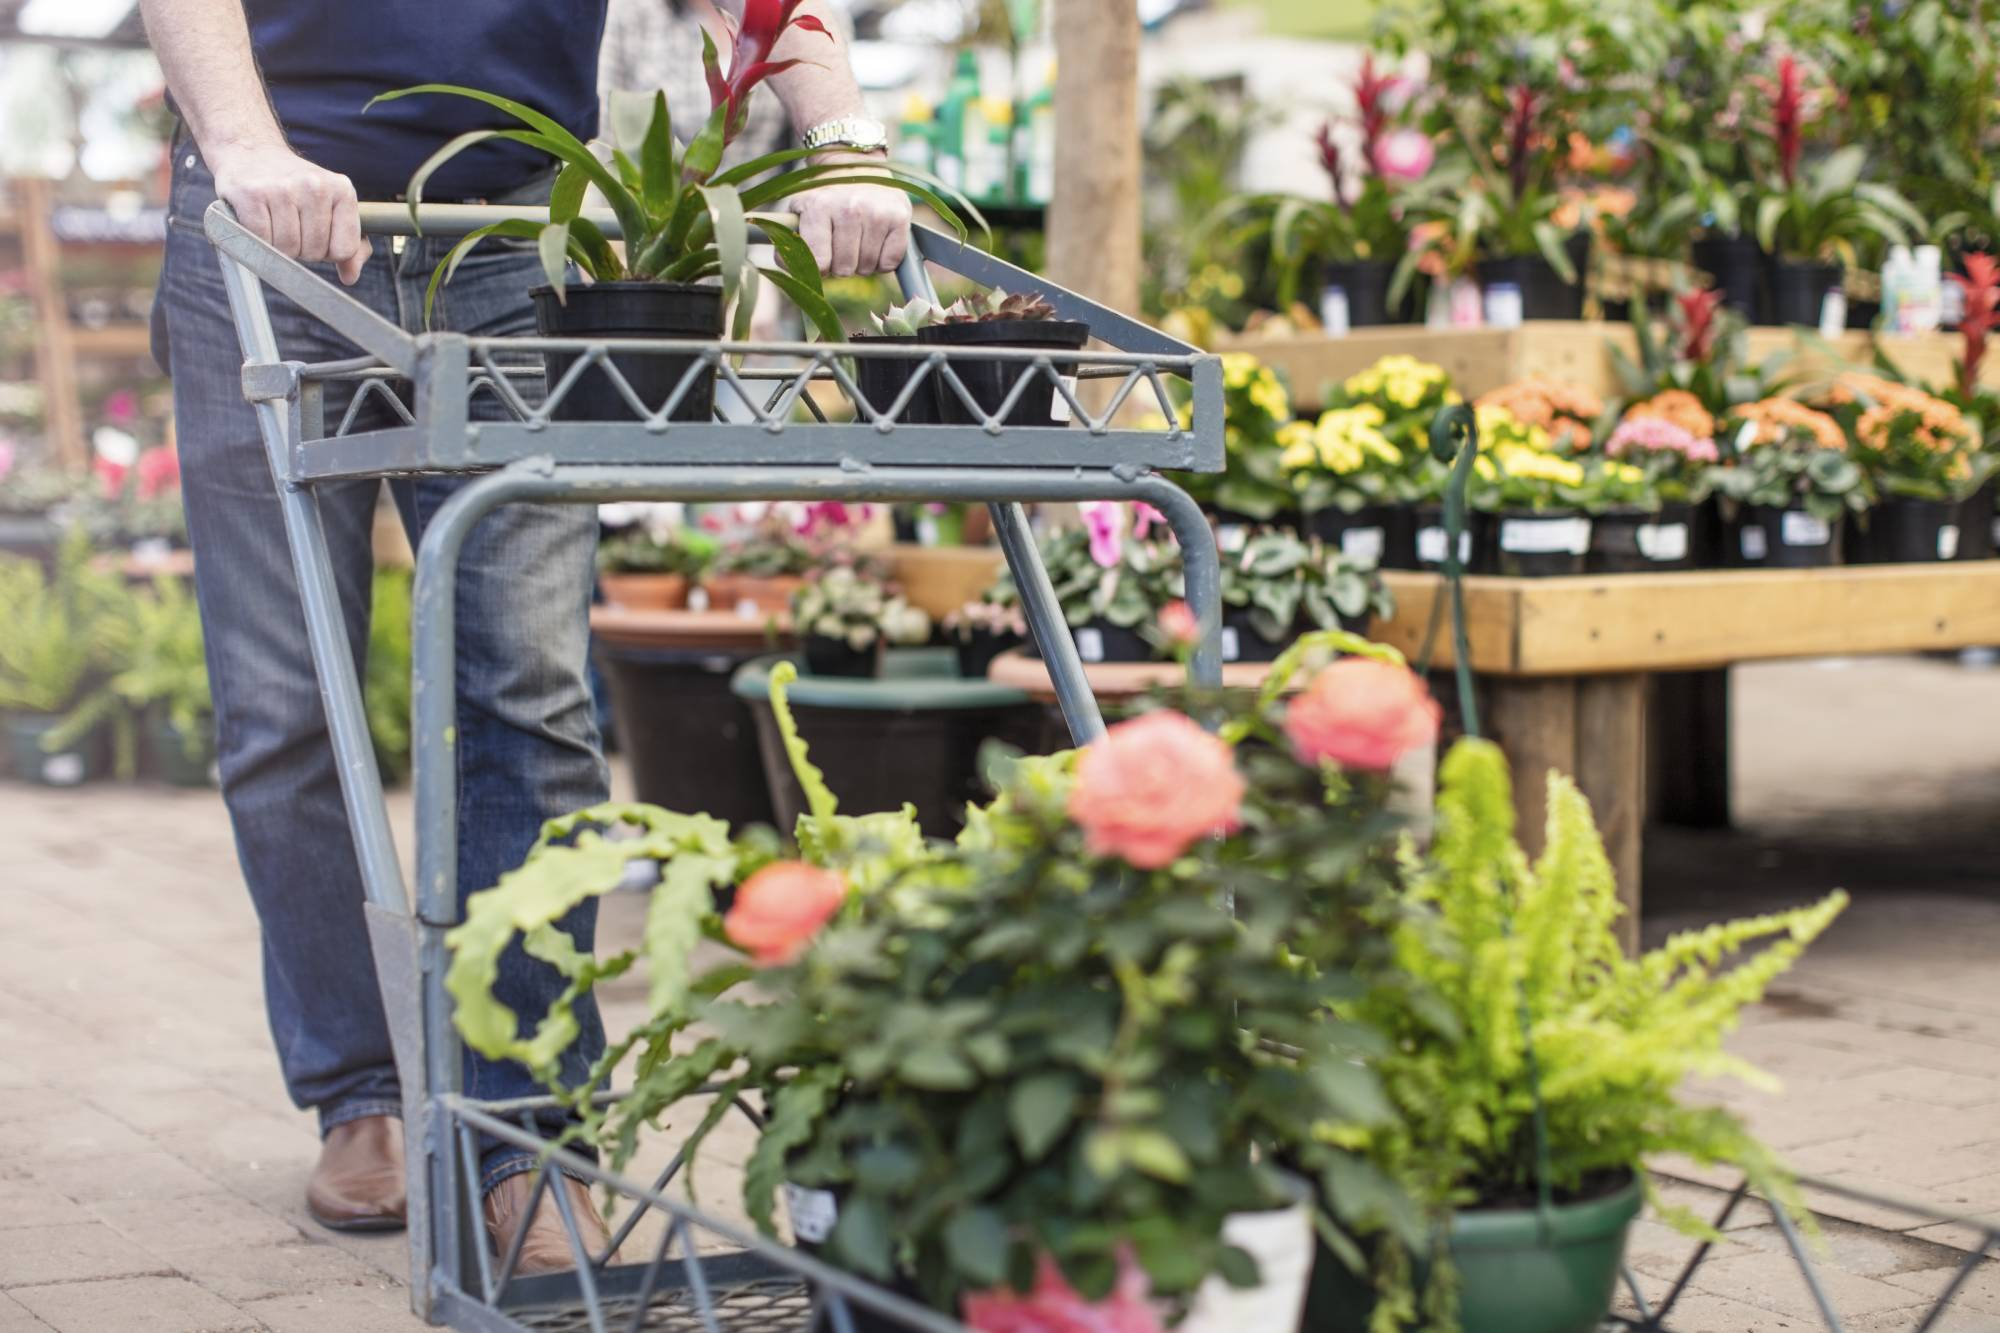 which garden centres are open tomorrow?